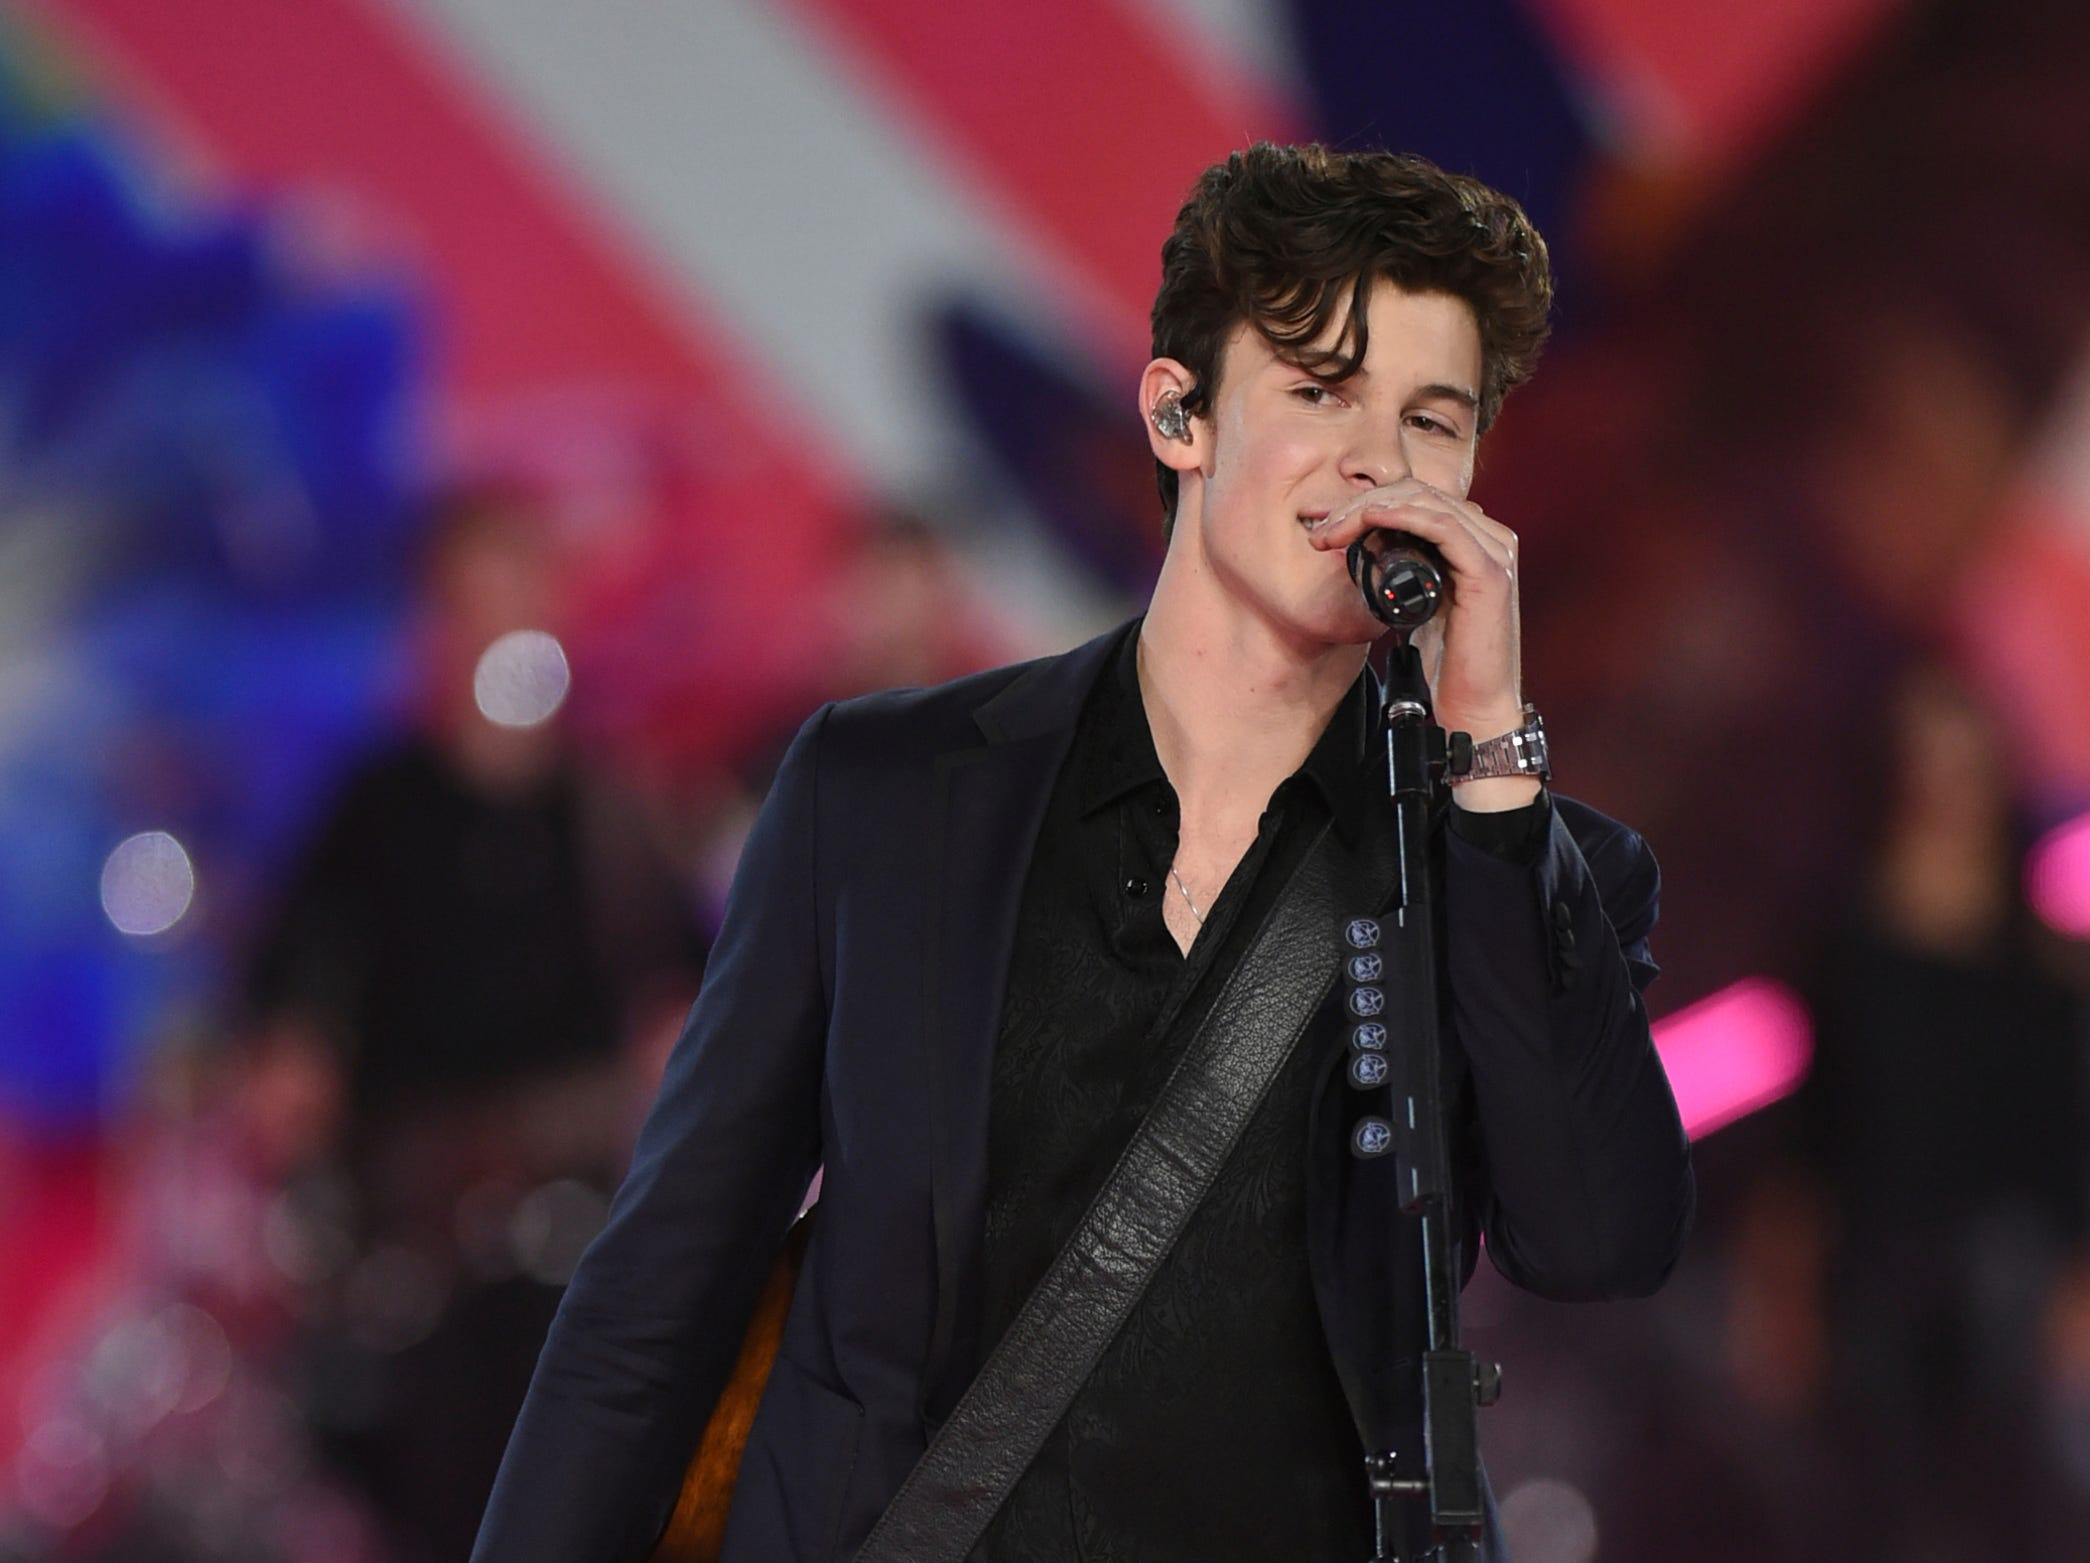 Shawn Mendes performs during the 2018 Victoria's Secret Fashion Show at Pier 94 on Thursday, Nov. 8, 2018, in New York. (Photo by Evan Agostini/Invision/AP) ORG XMIT: CAPM138